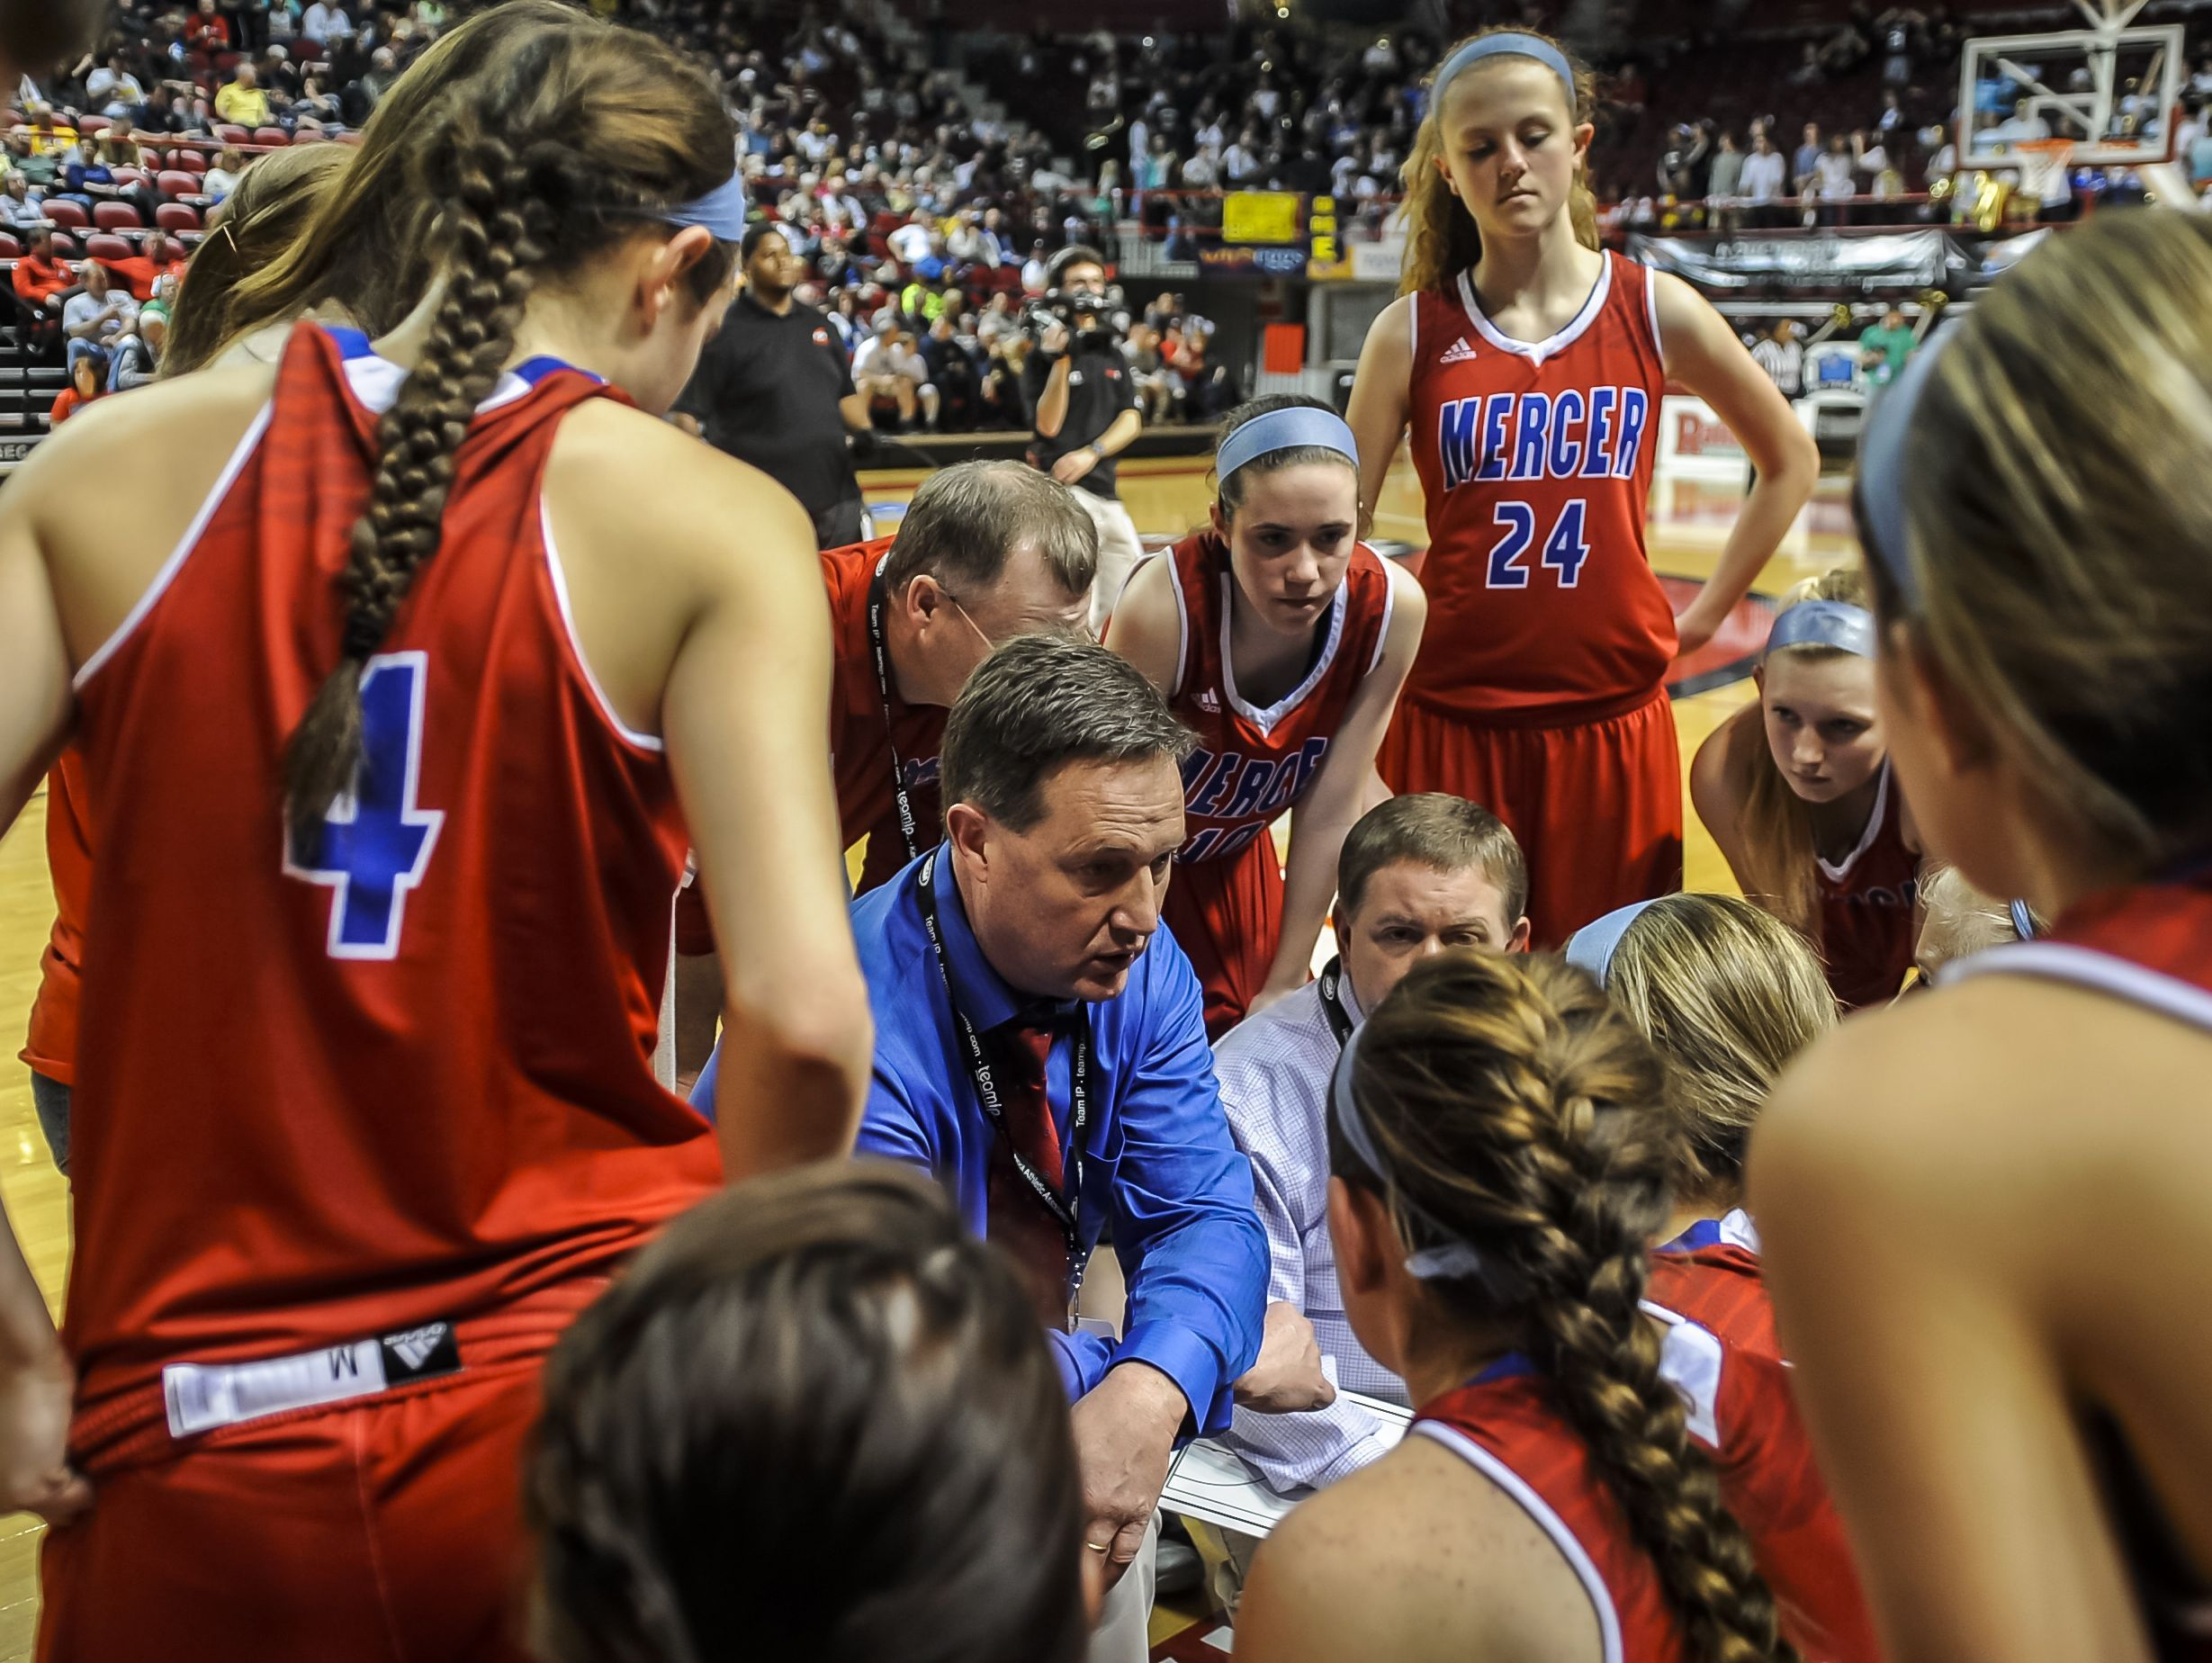 Mercer County's head coach Chris Souder, center, talks with players during a timeout in a KHSAA Girls' Sweet Sixteen high school basketball game against Elizabethtown, Wednesday, March 11, 2015, at E.A. Diddle Arena in Bowling Green, Ky. (AP Photo/Daily News, Bac To Trong)